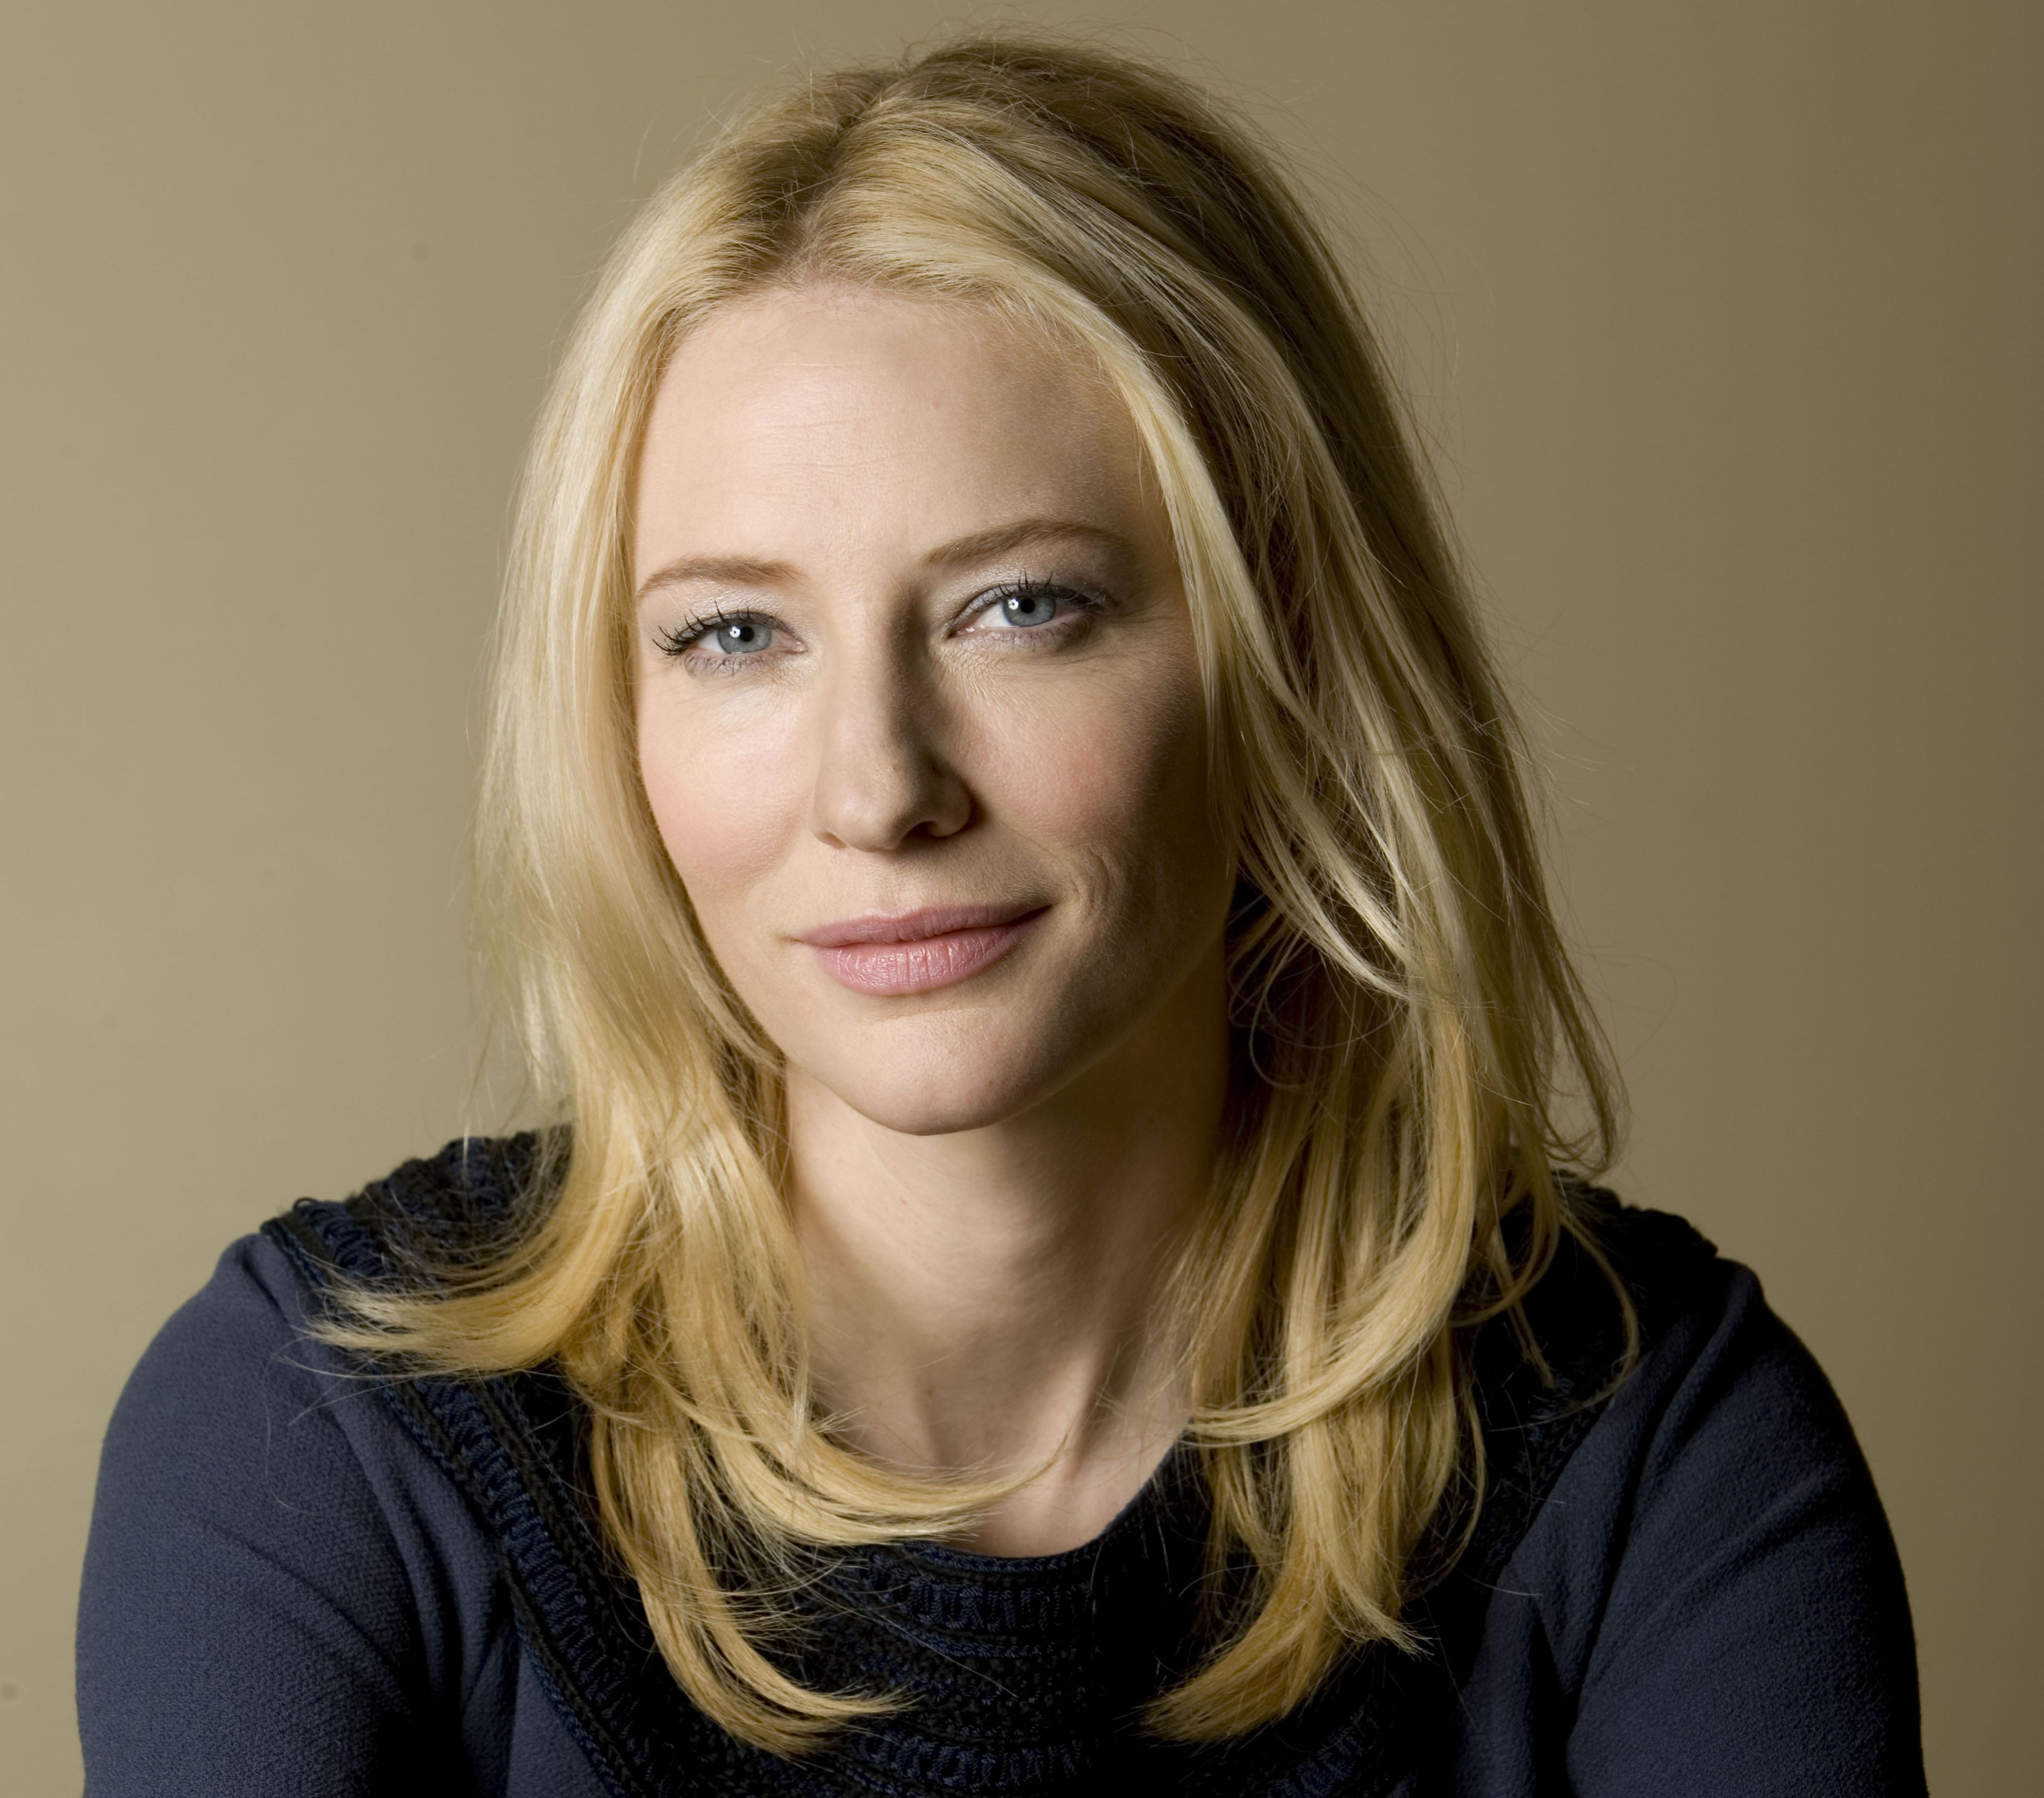 Cate Blanchett Approached For 'The House With a Clock in Its Walls'